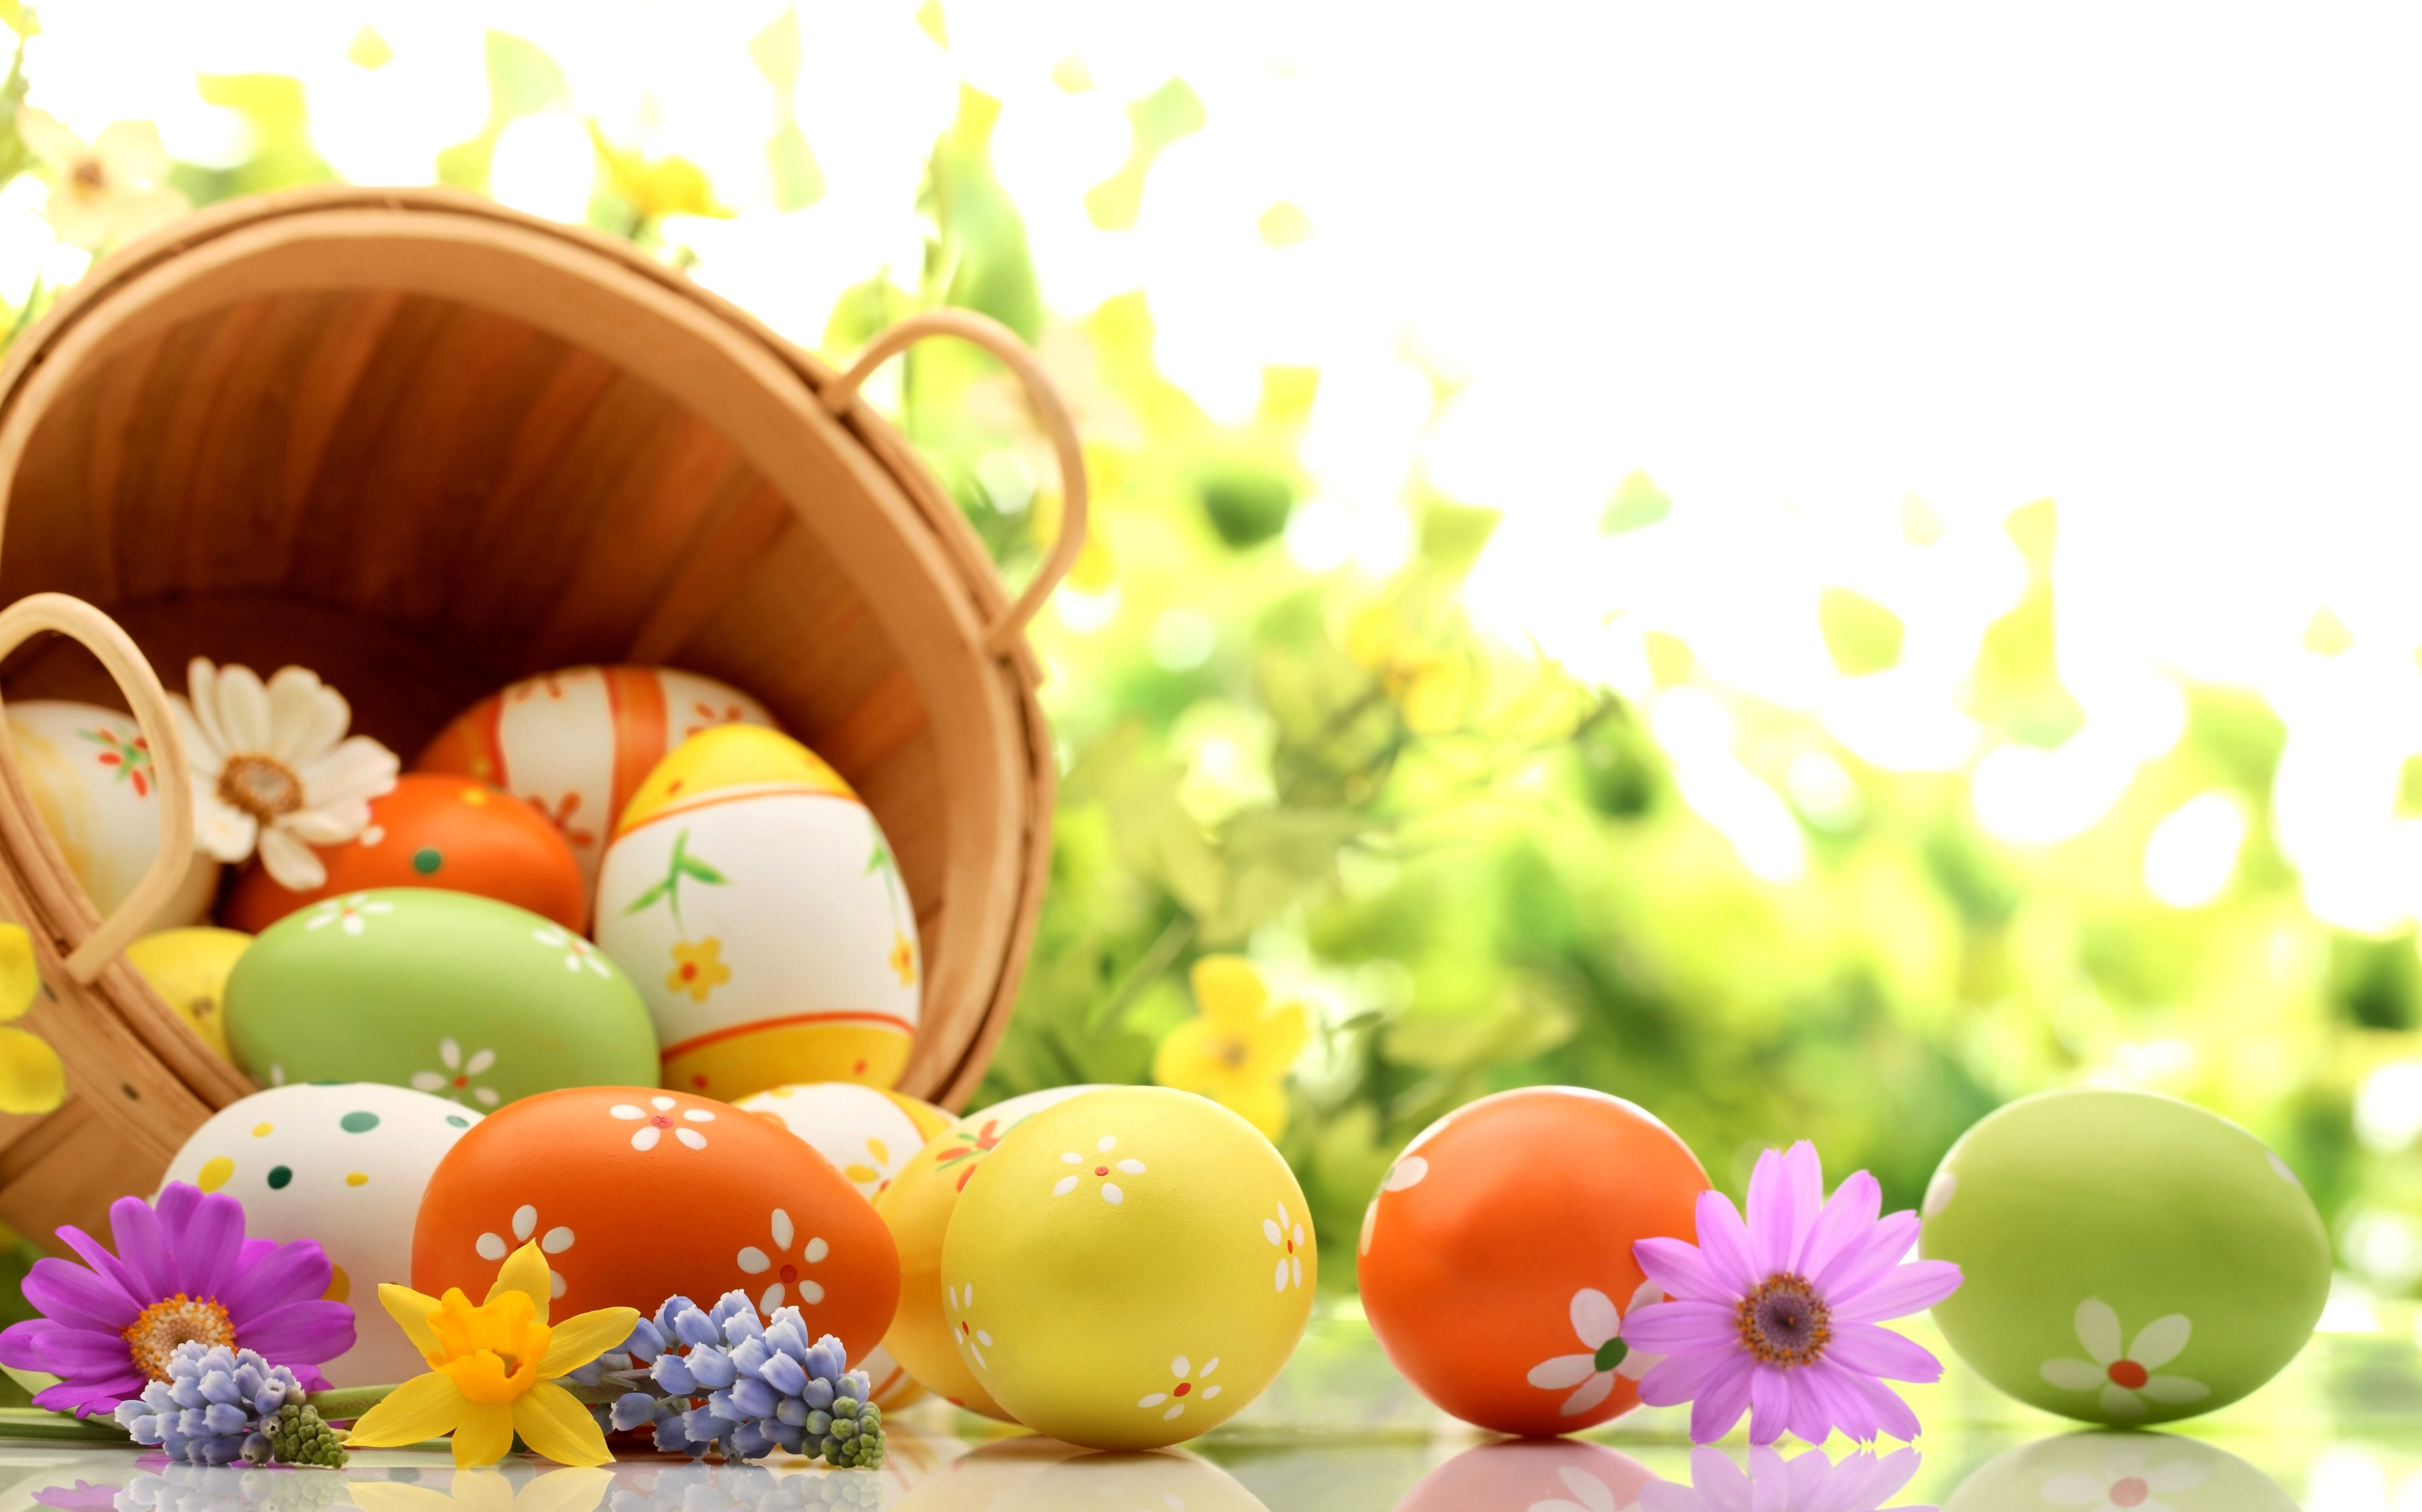 Easter also means Spring is Easter